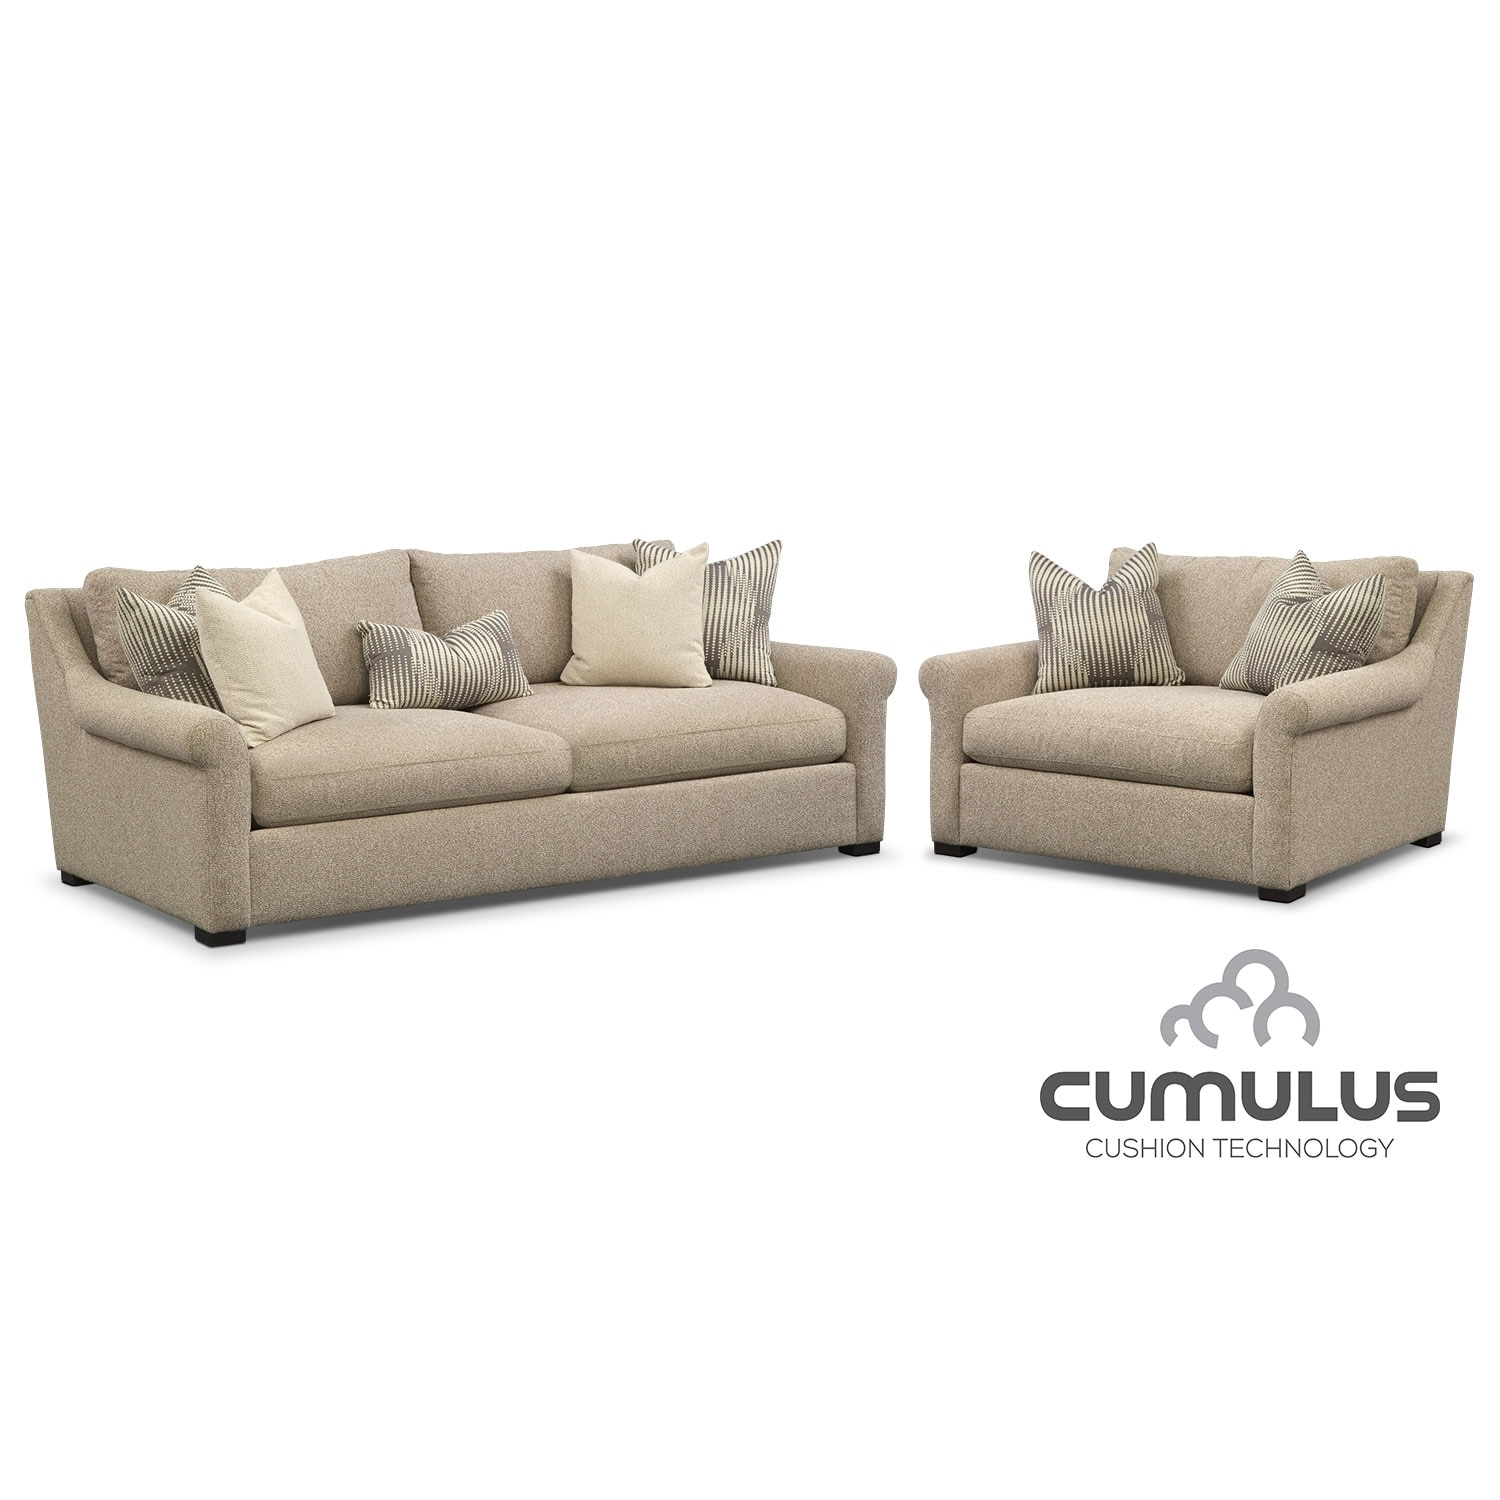 Roberston Cumulus Sofa and Chair and a Half Set - Beige